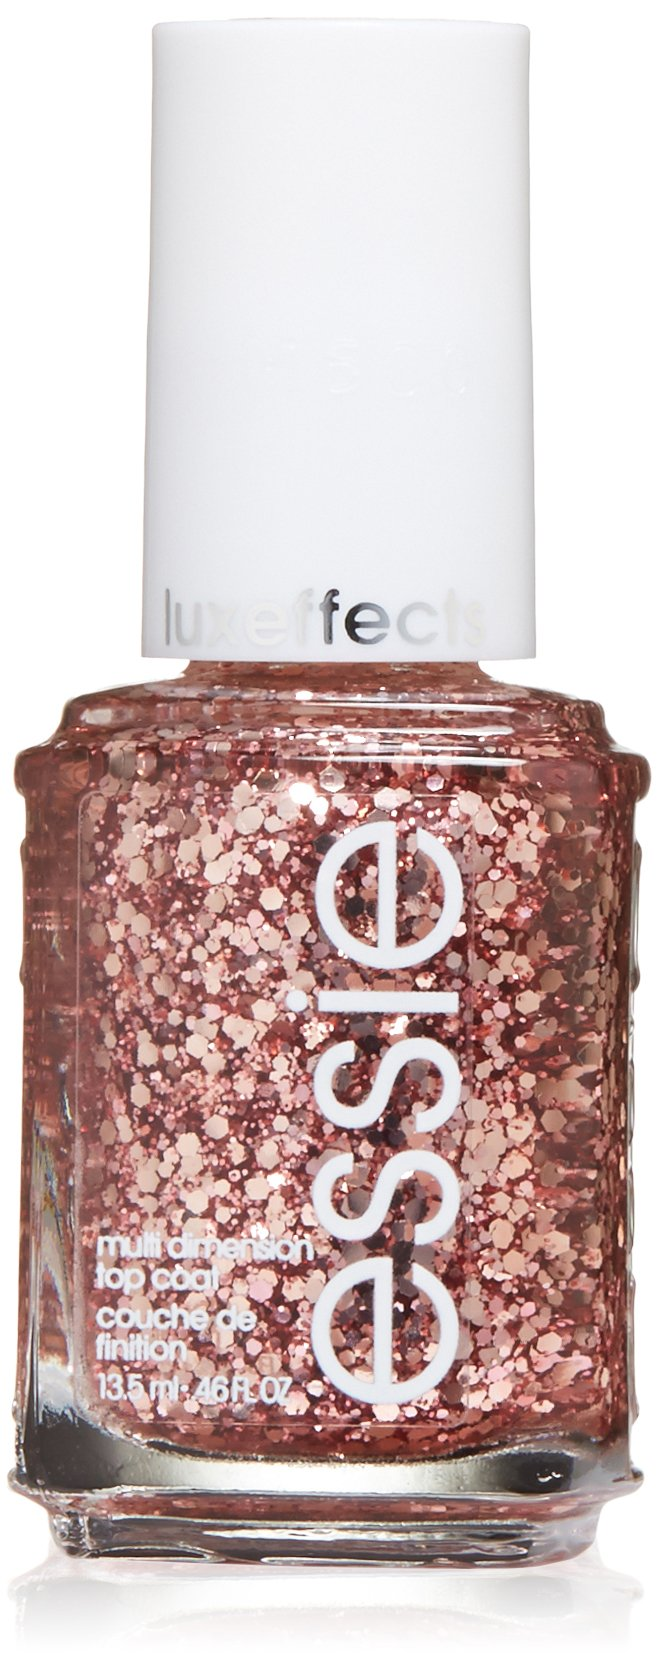 Amazon.com : essie luxeffects nail polish, summit of style, 0.46 fl ...